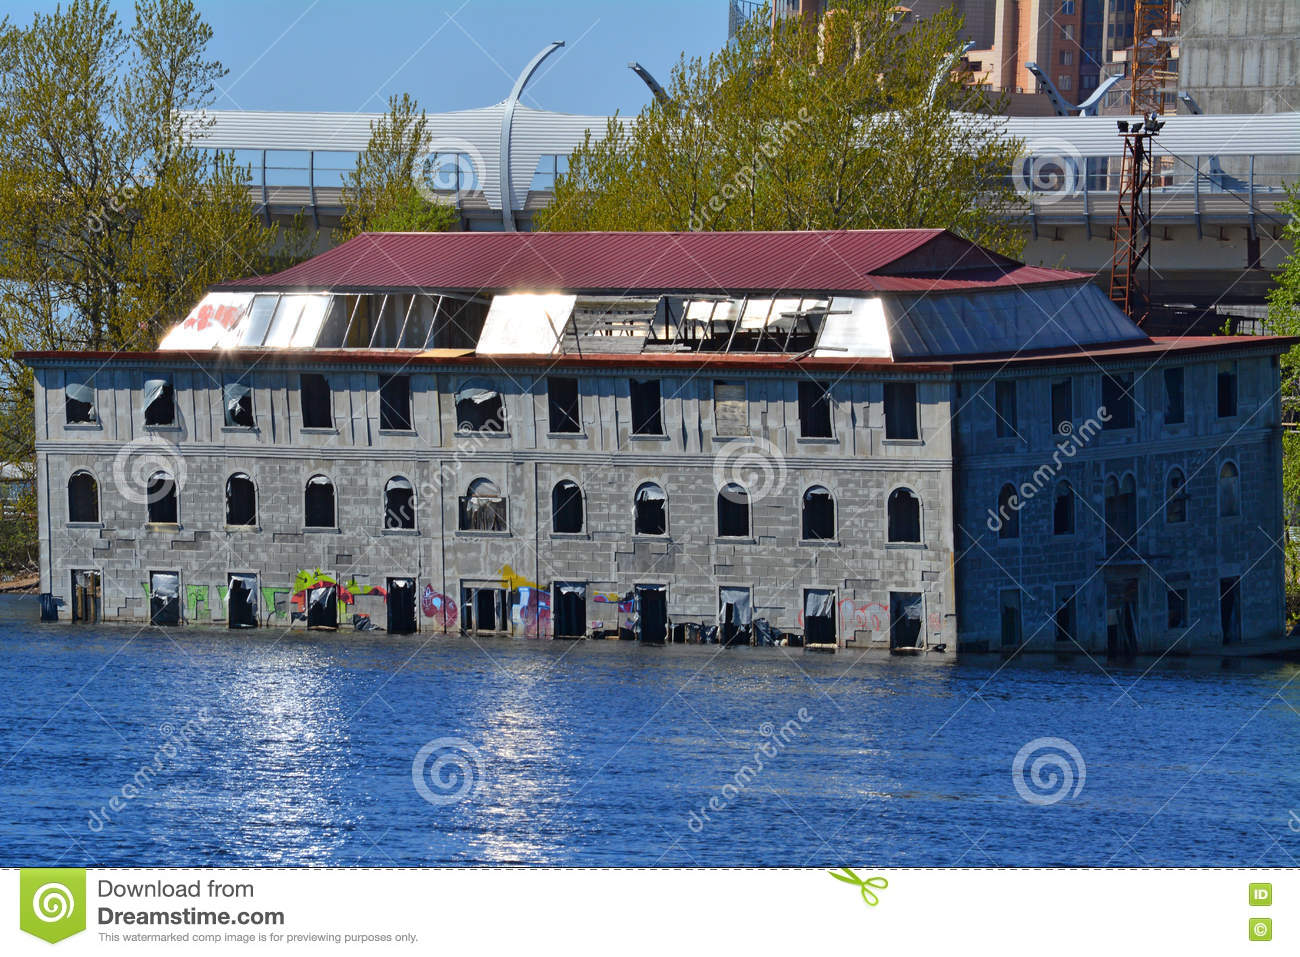 Semi-flooded model of a house on Bolshaaya Nevka River in St. Petersburg, Russia